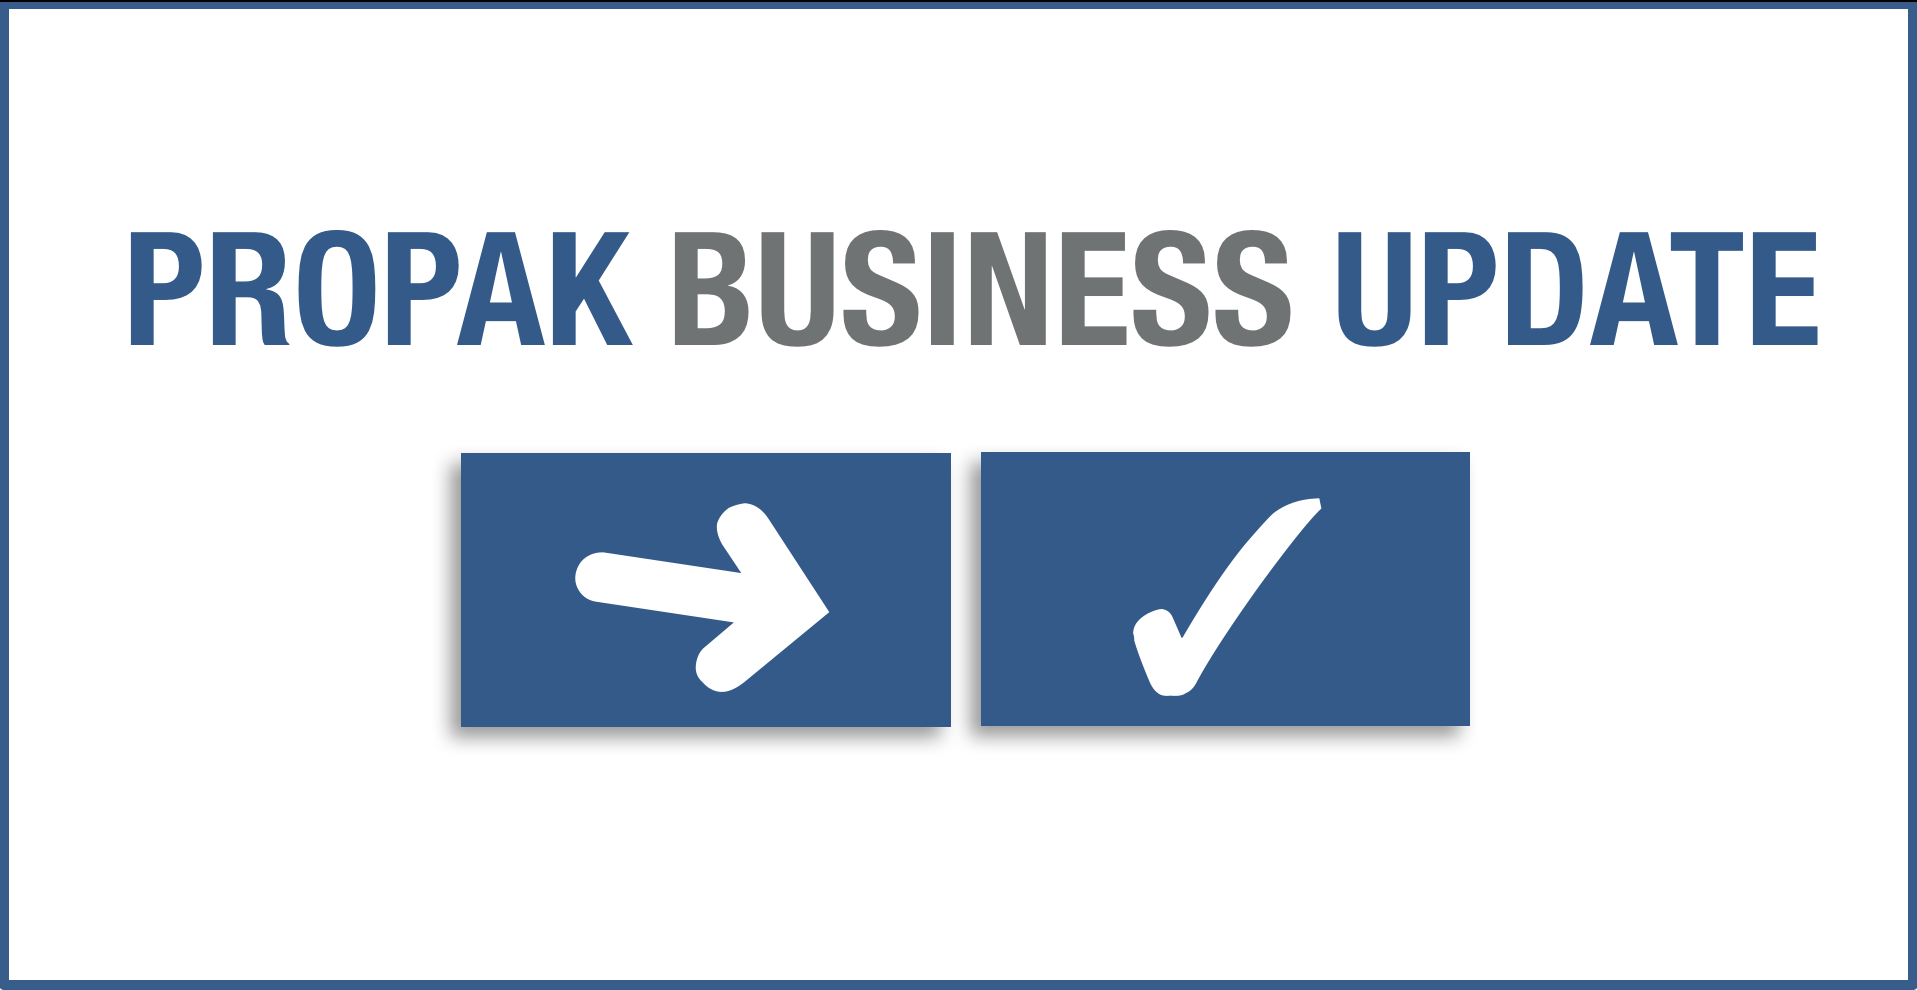 PROPAK Business Update